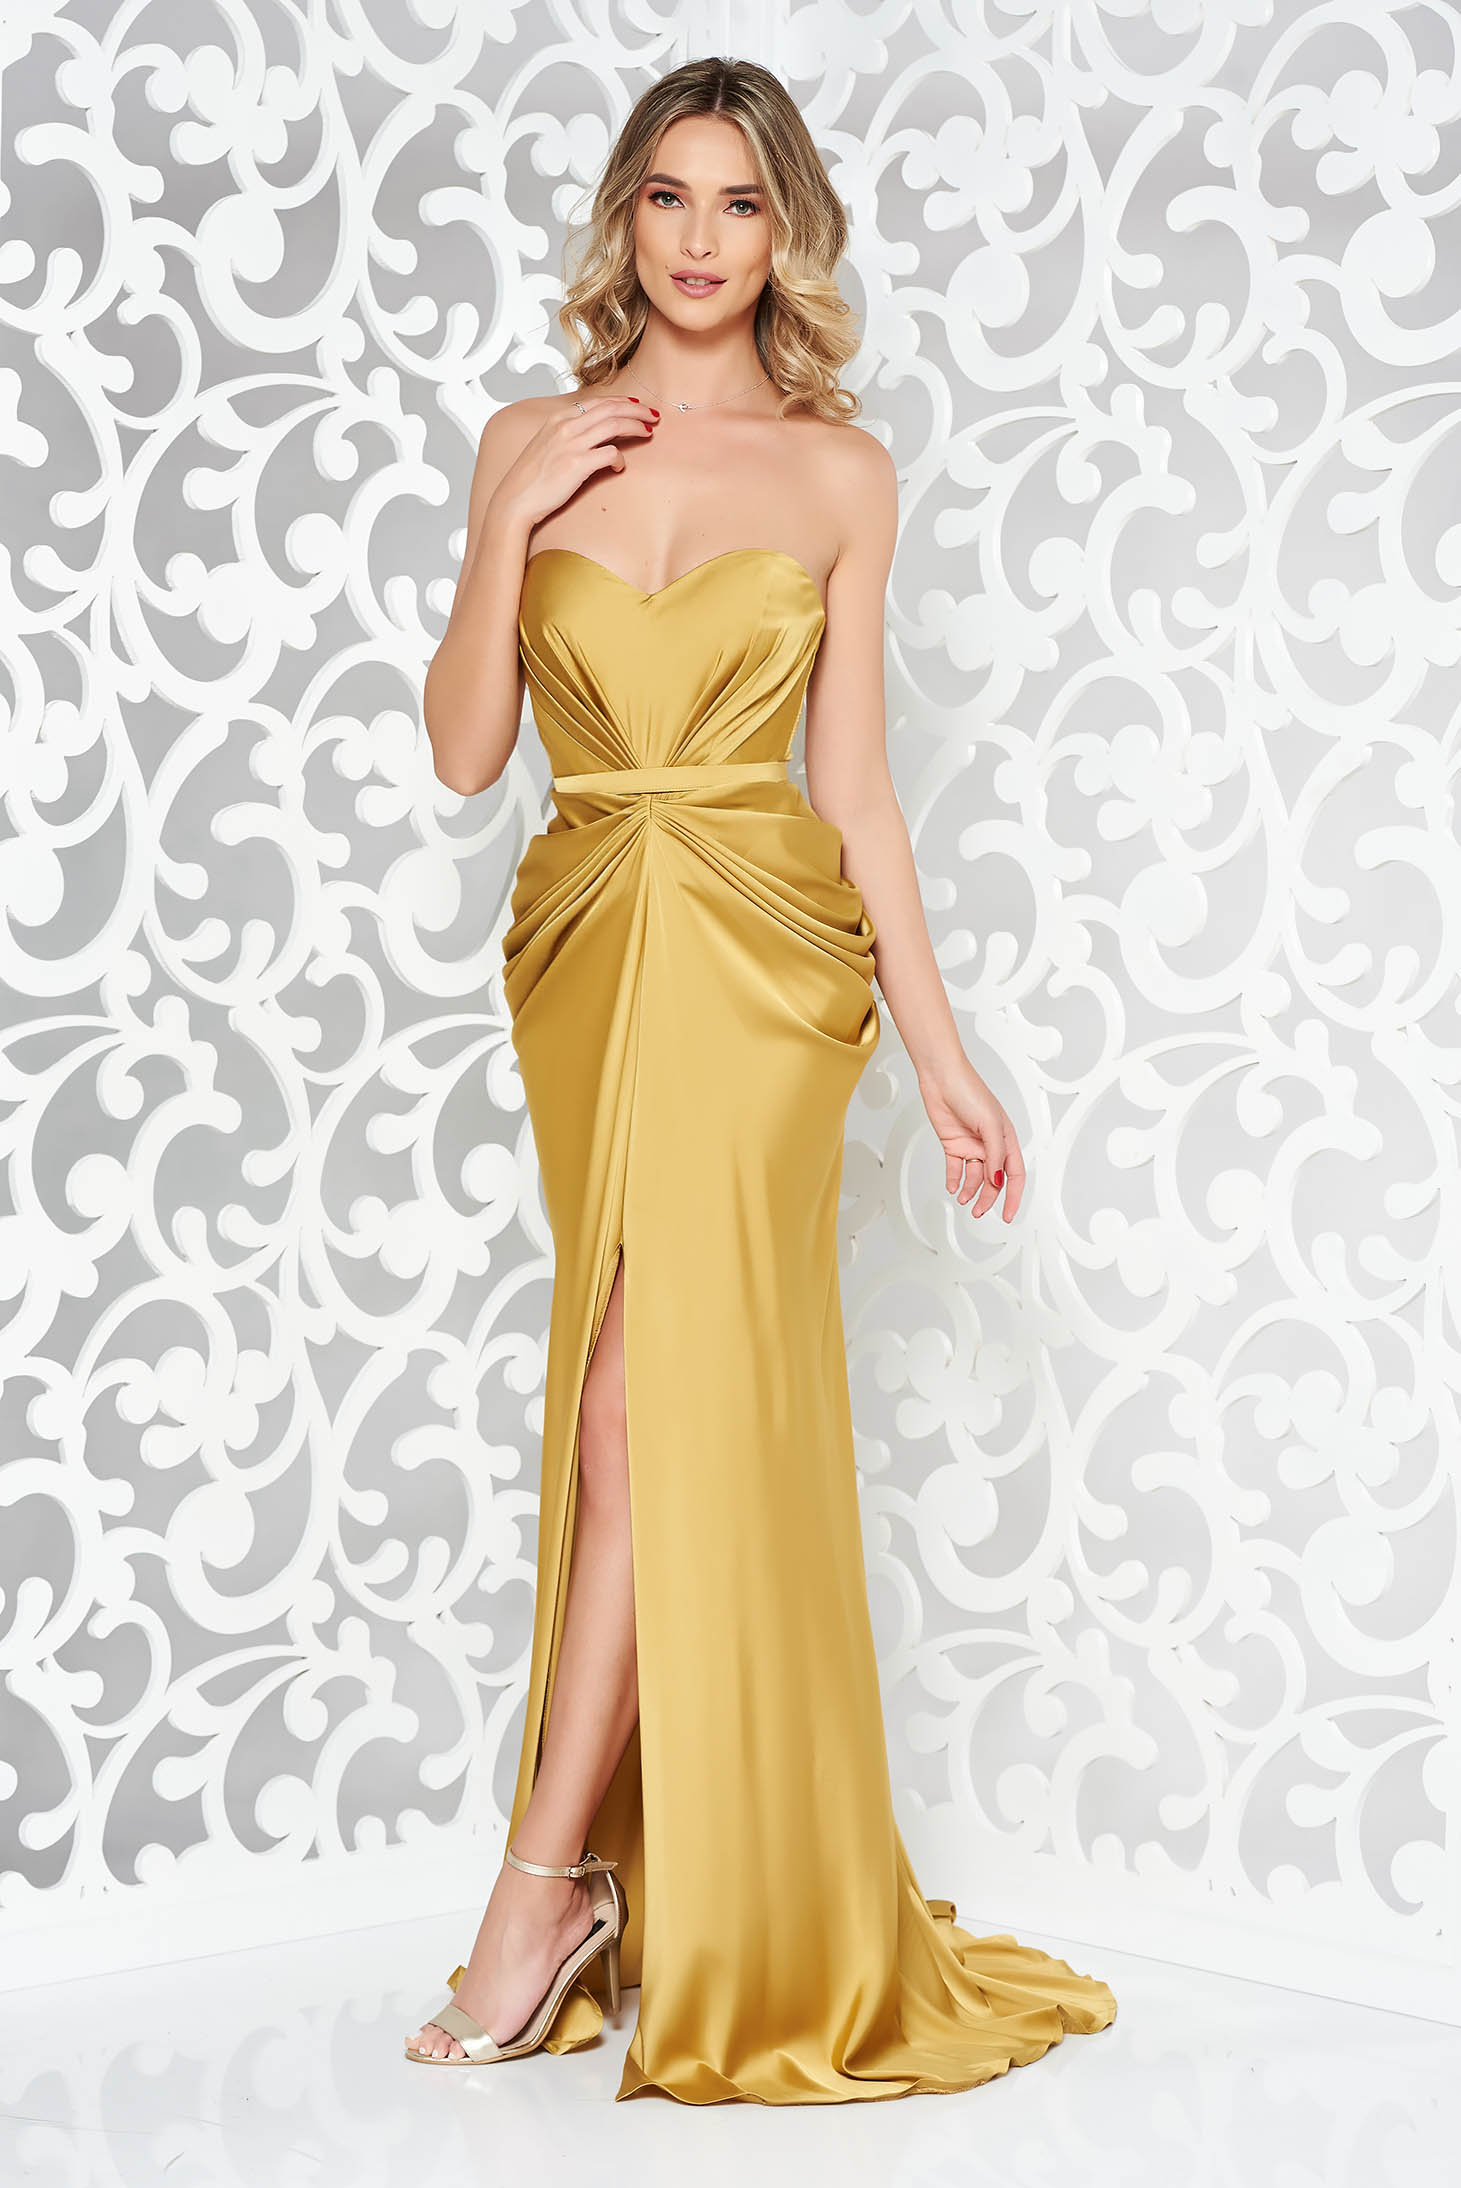 Ana Radu luxurious off shoulder dress from satin fabric texture with push-up bra accessorized with tied waistband mustard